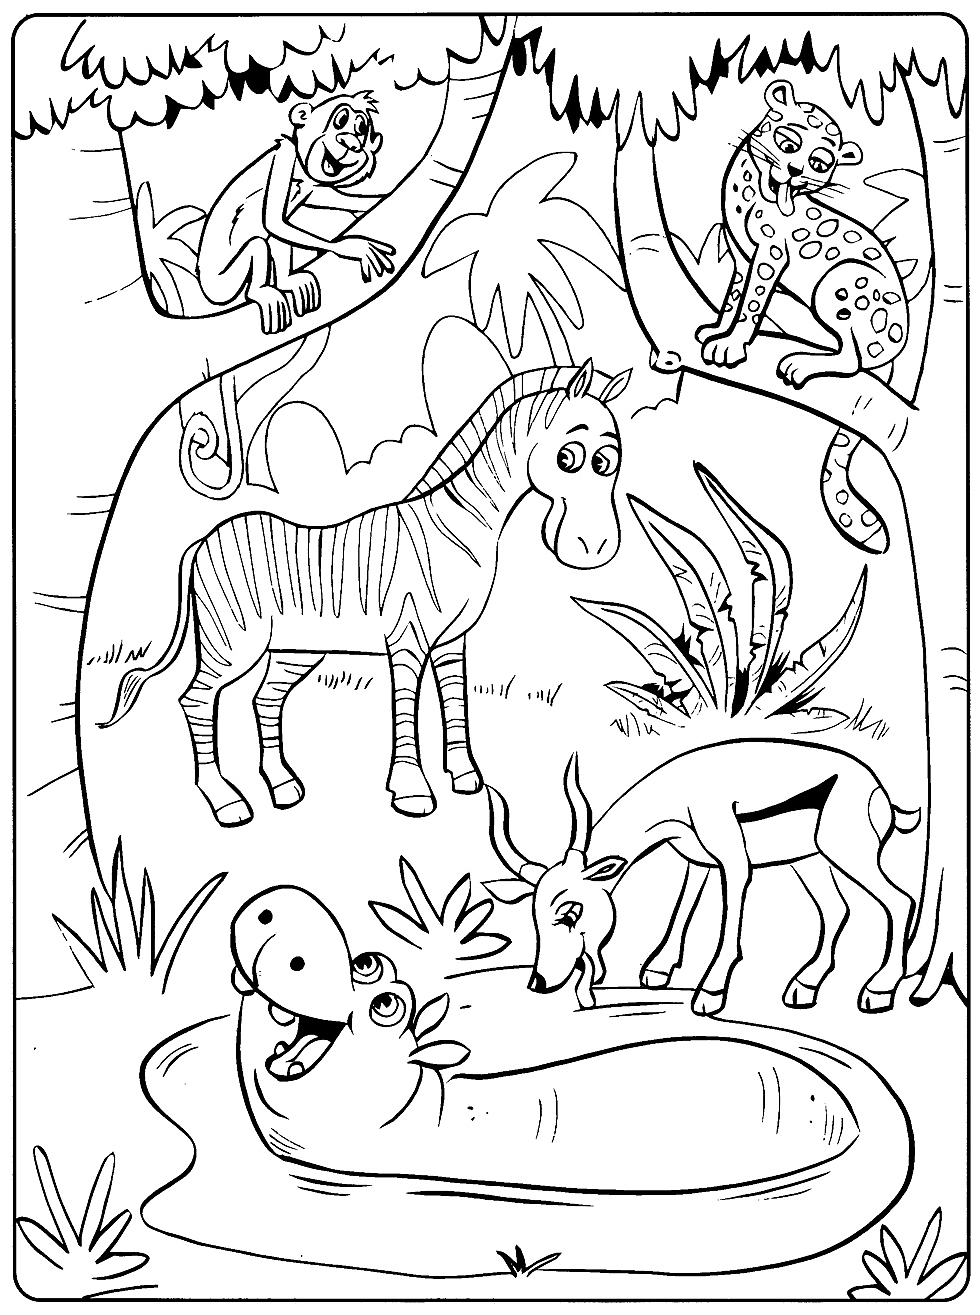 Toddler Coloring Pages | coloring pages for toddlers